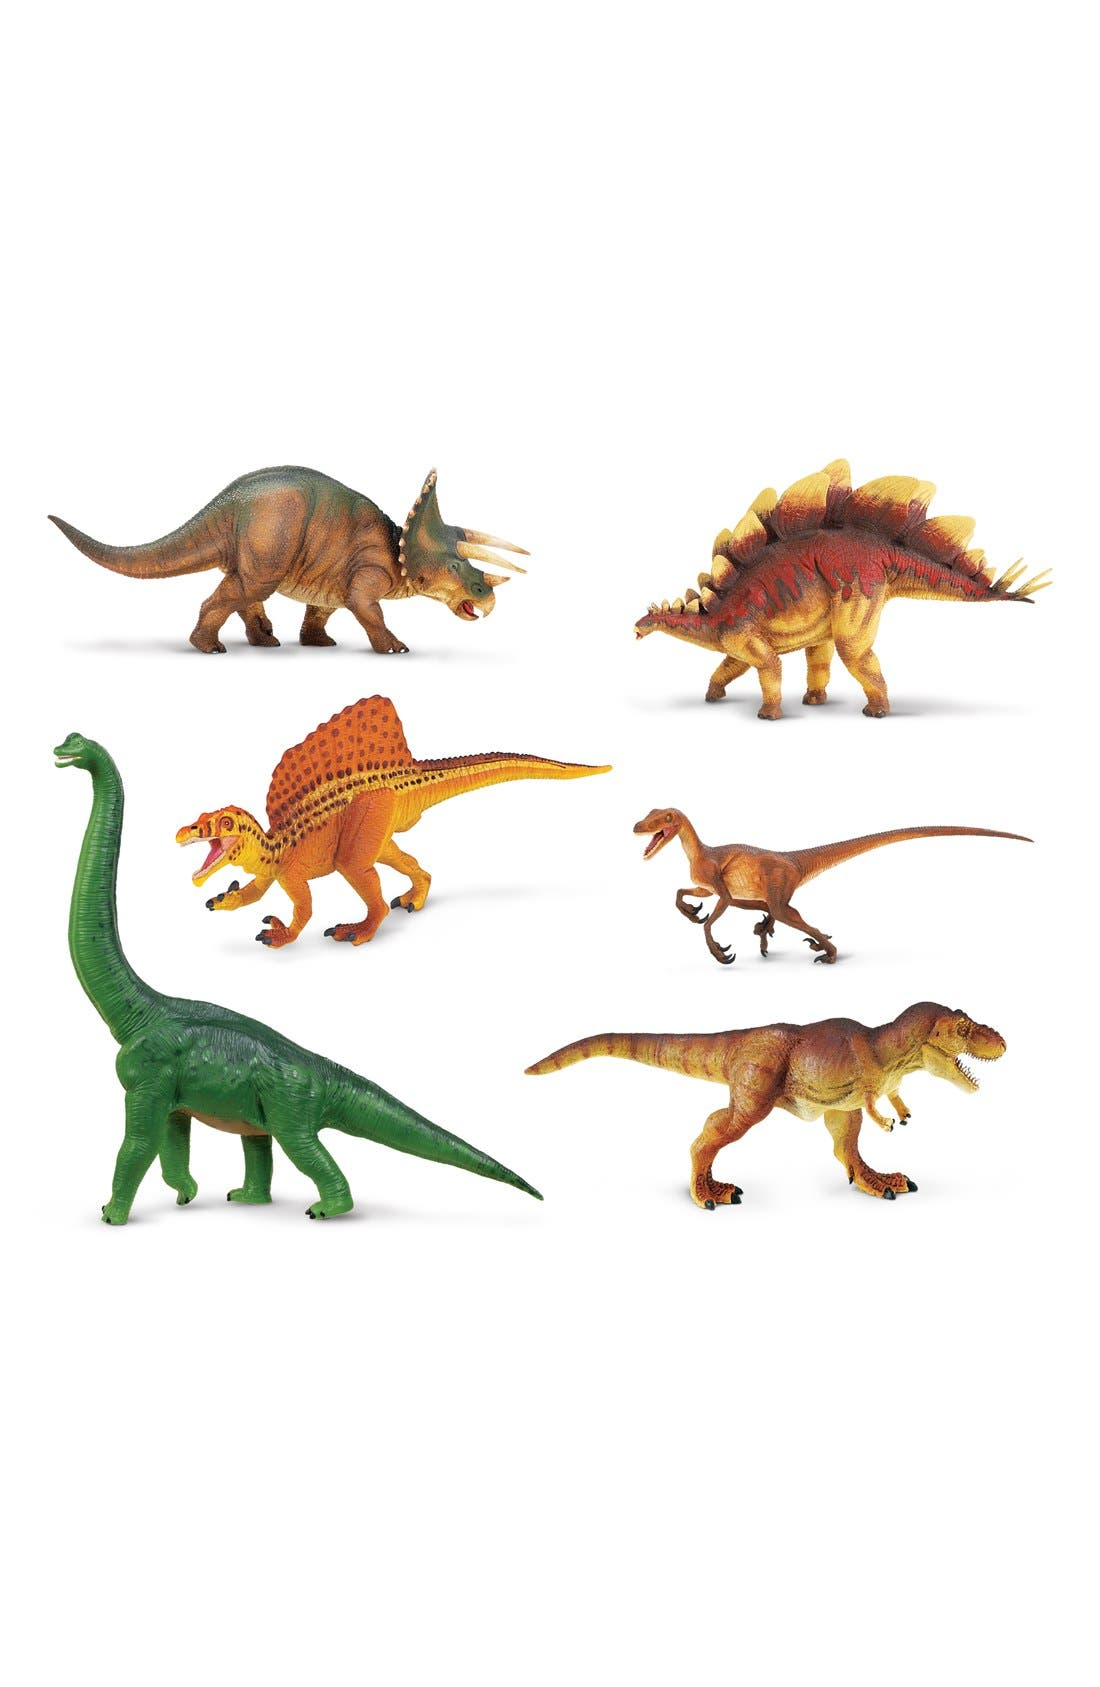 Safari Ltd. Dinosaur Figurines (Set of 6)